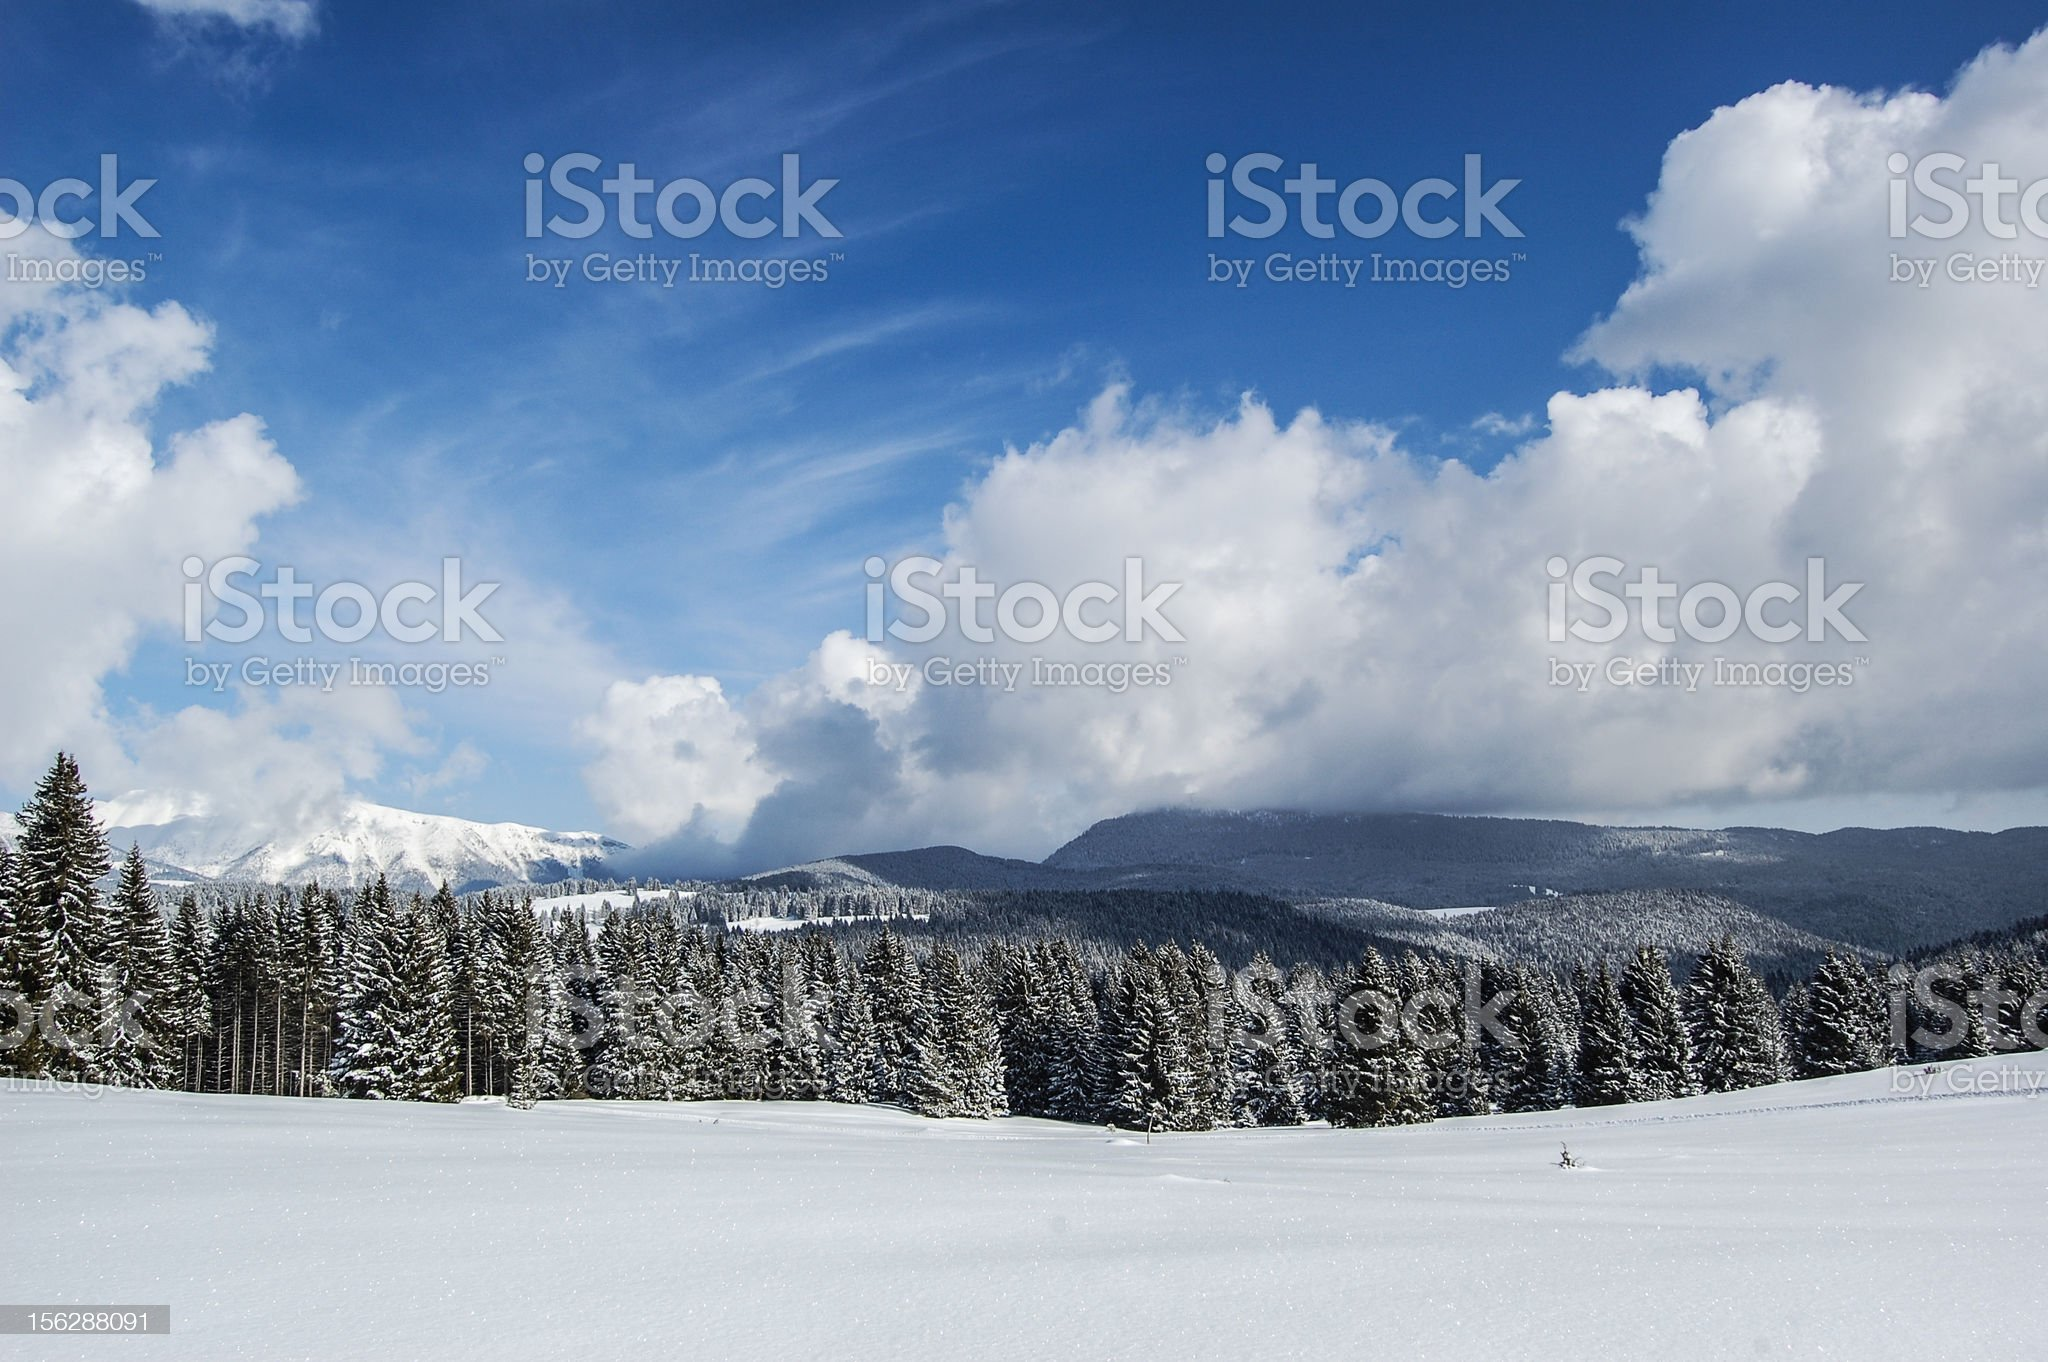 Winter Forest in Italy royalty-free stock photo